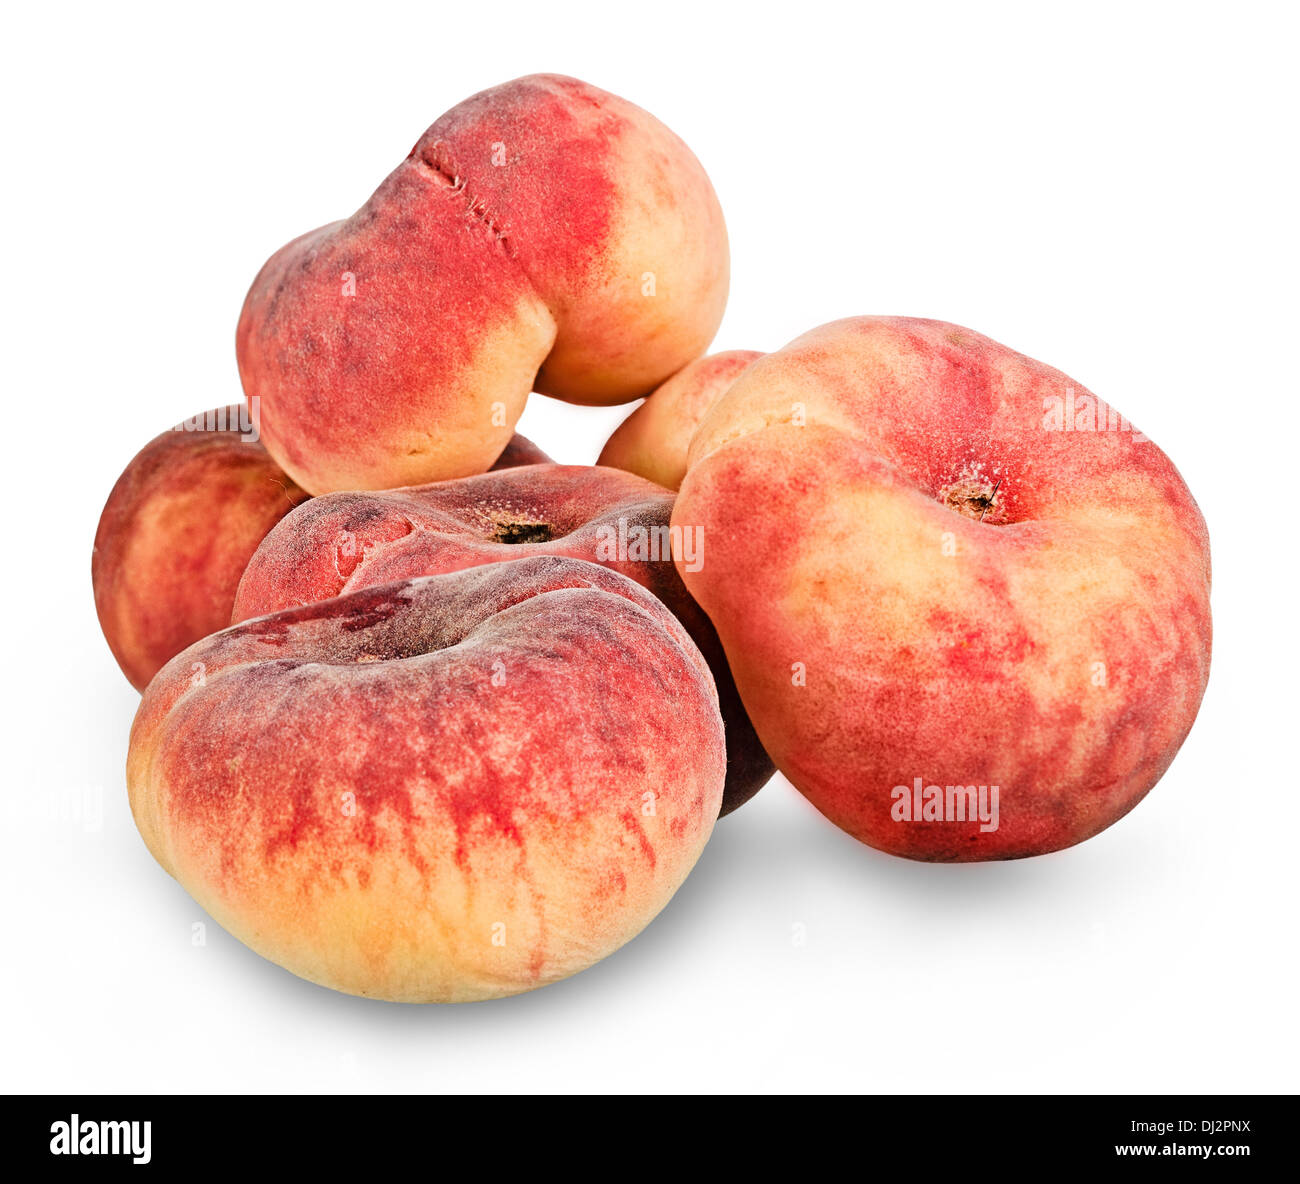 Donut peaches over white background . Images collected from four shots to increase the zone of sharpness - Stock Image